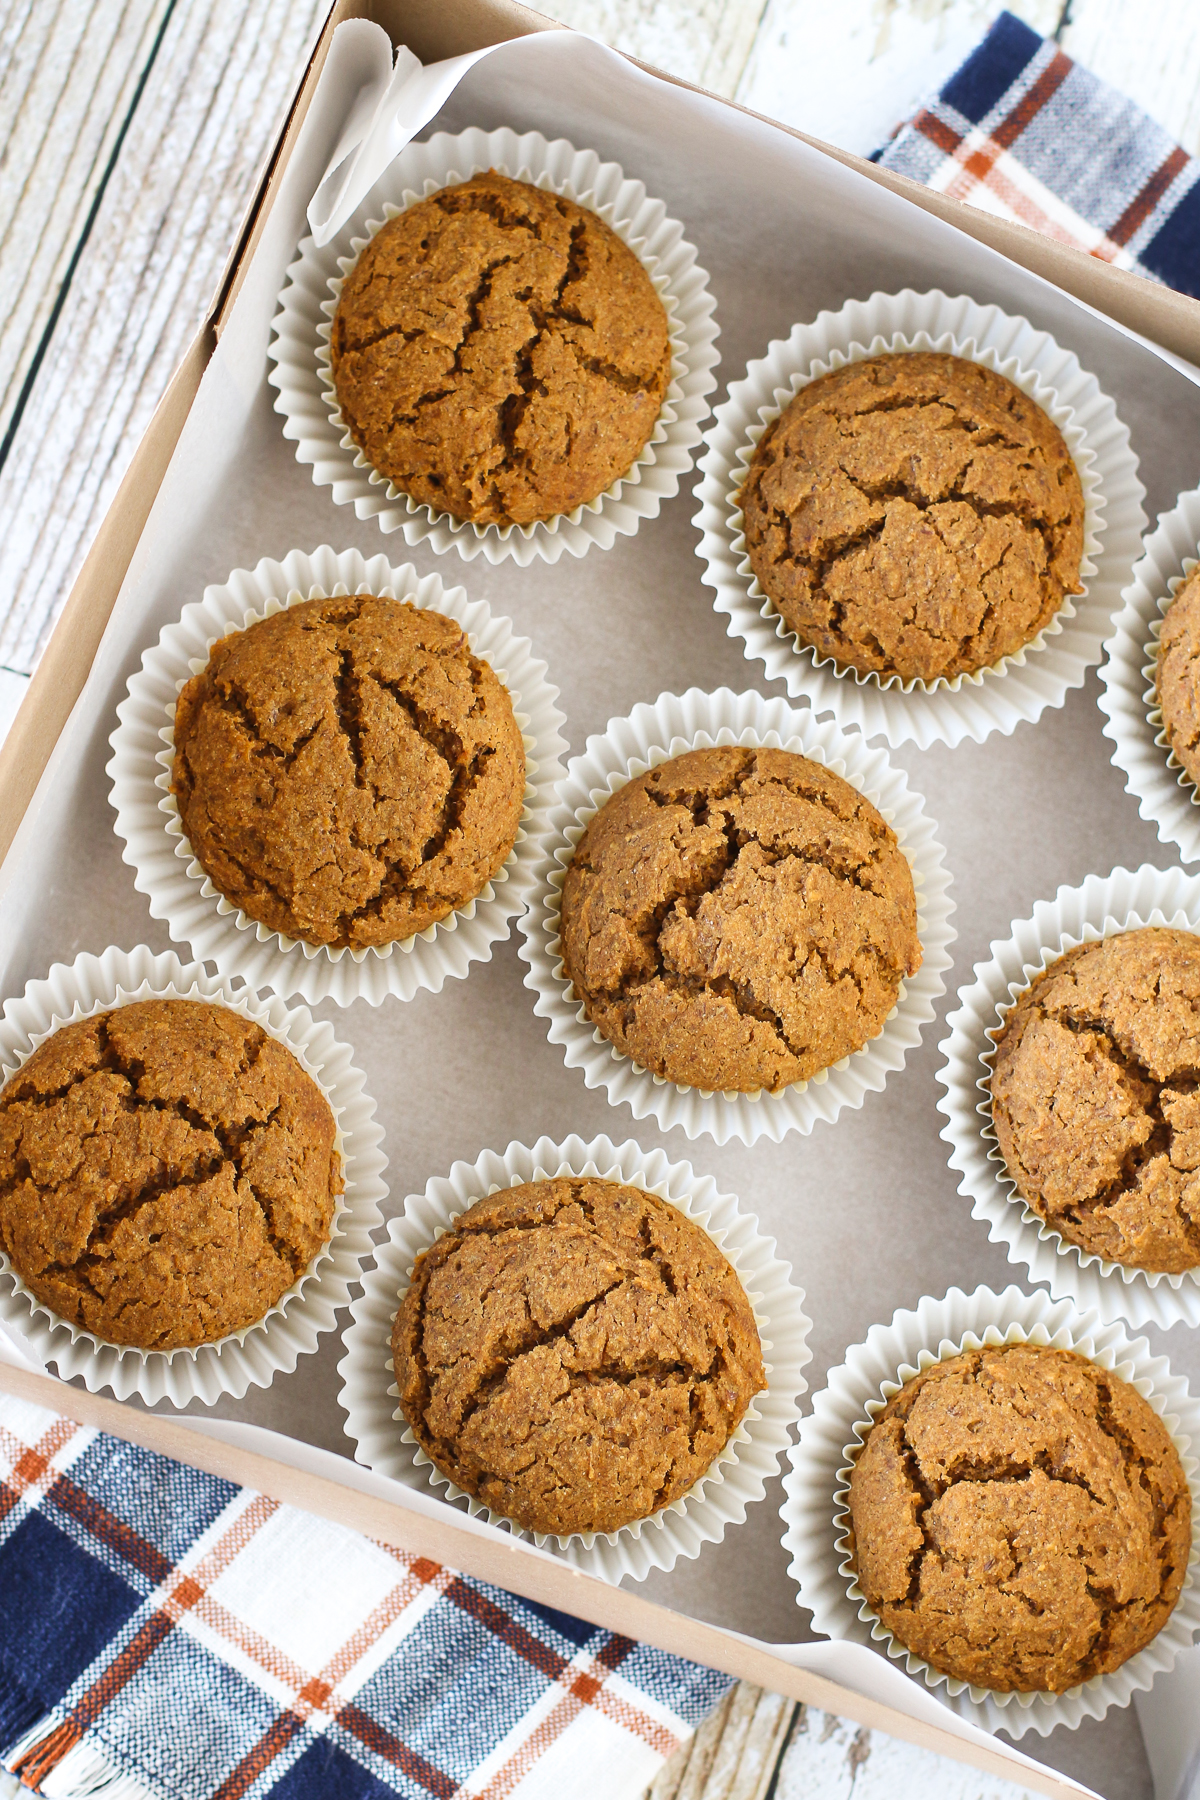 Gluten Free Vegan Pumpkin Spice Muffins. Packaged and ready to be shared with a friend or neighbor!